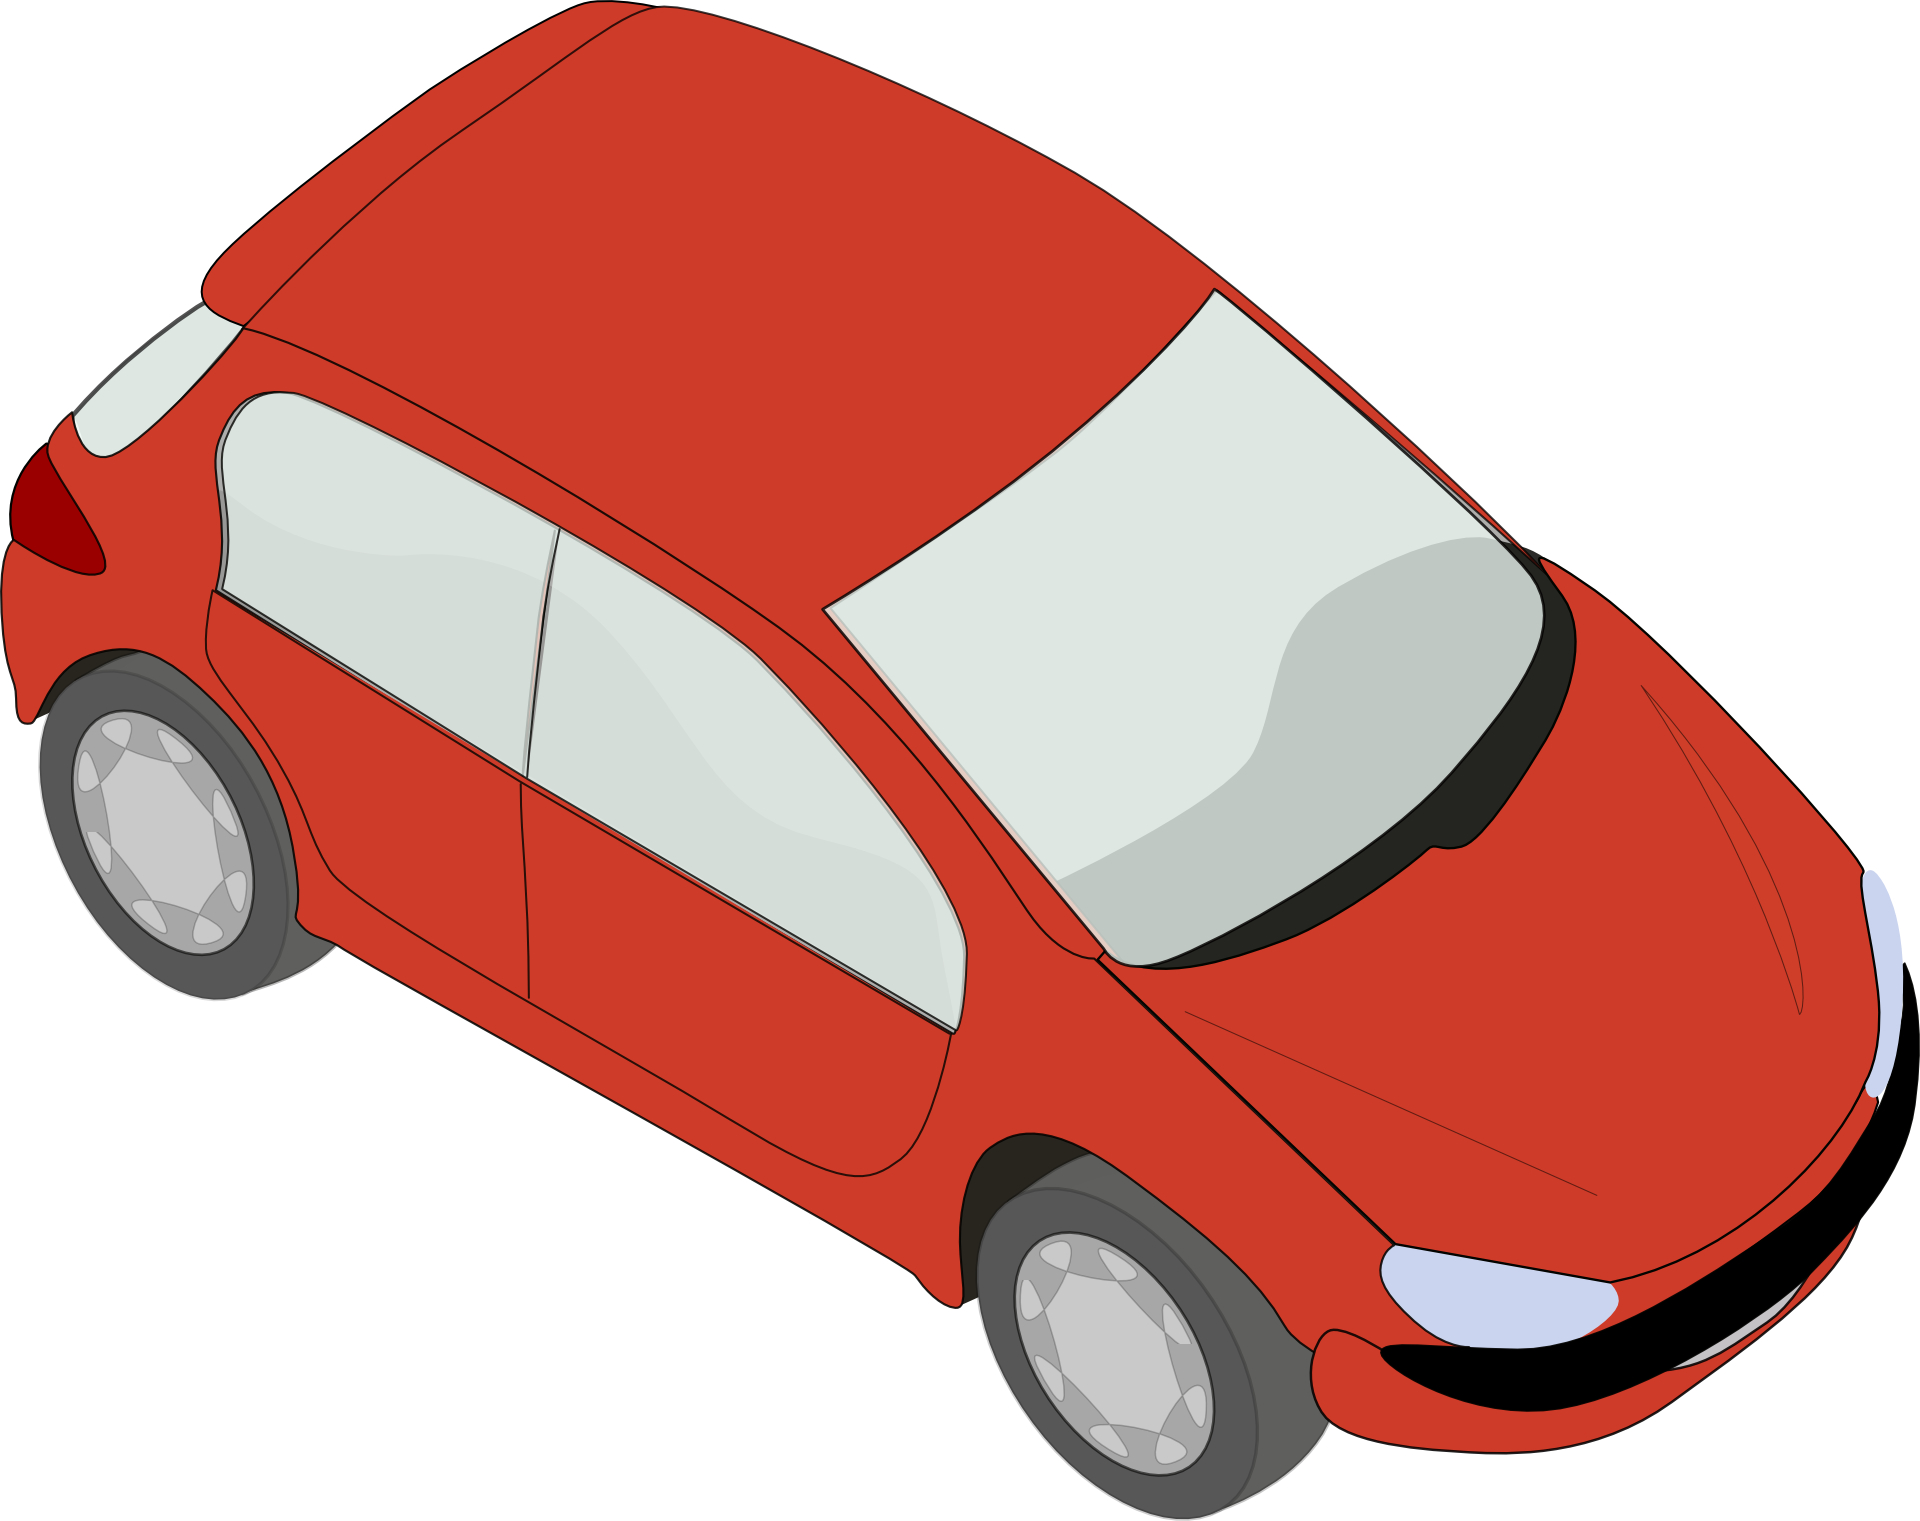 Red peugeot car-vehicle vector